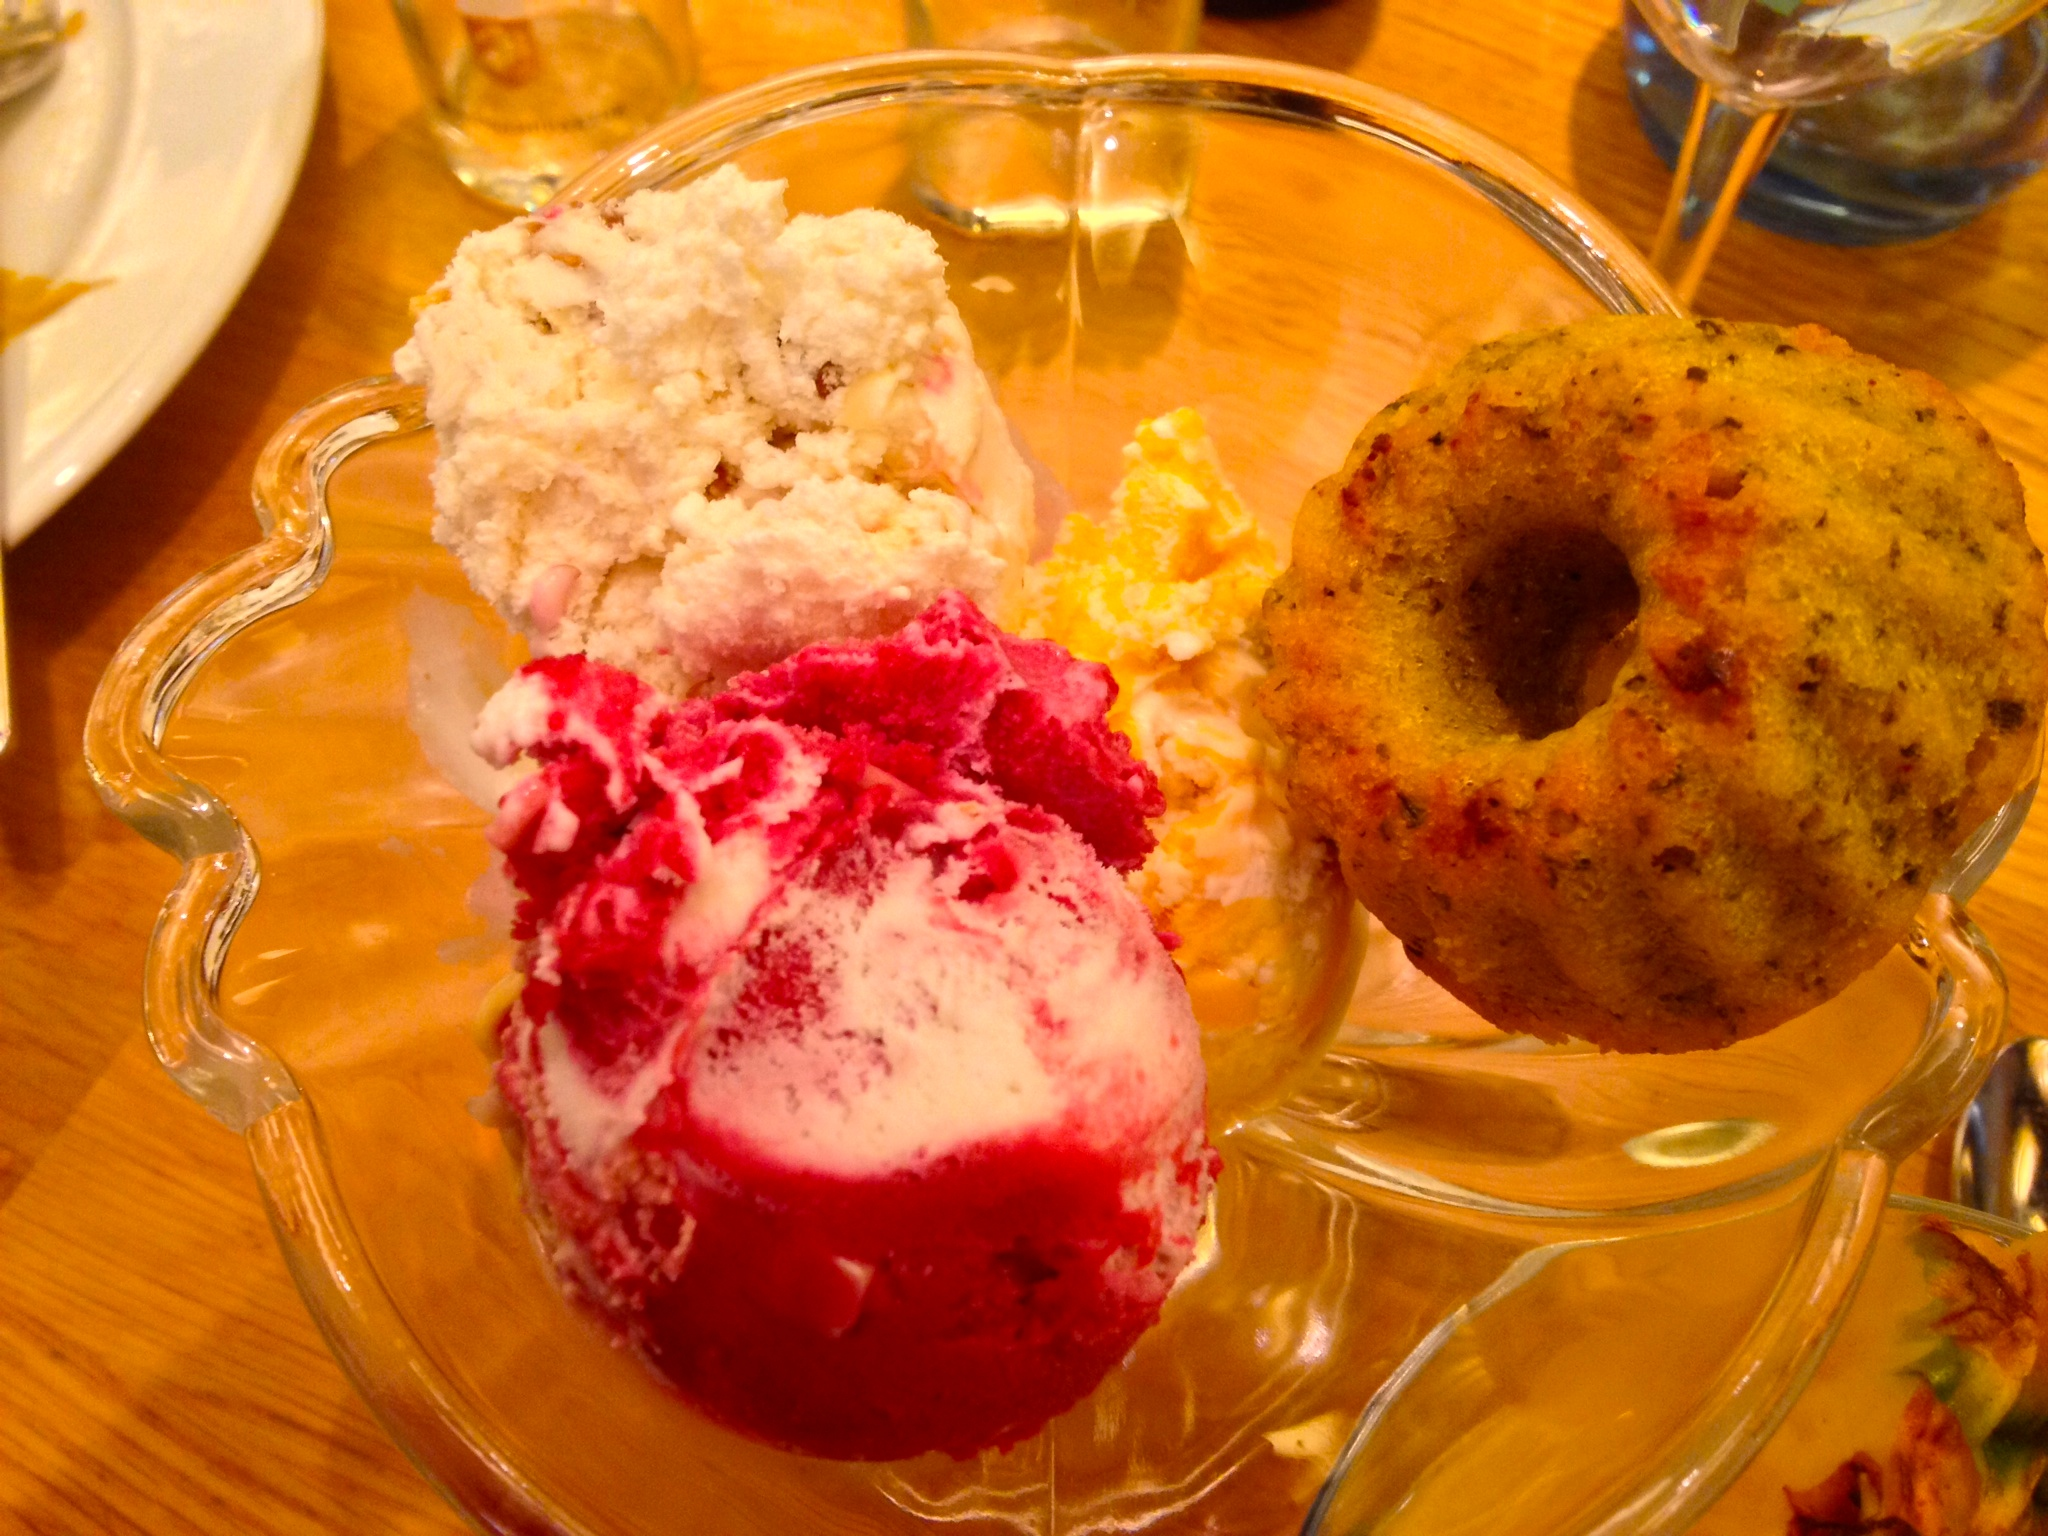 For dessert: walnut, mango, and raspberry-white chocolate ice creams and a lemon-poppy mini-cake